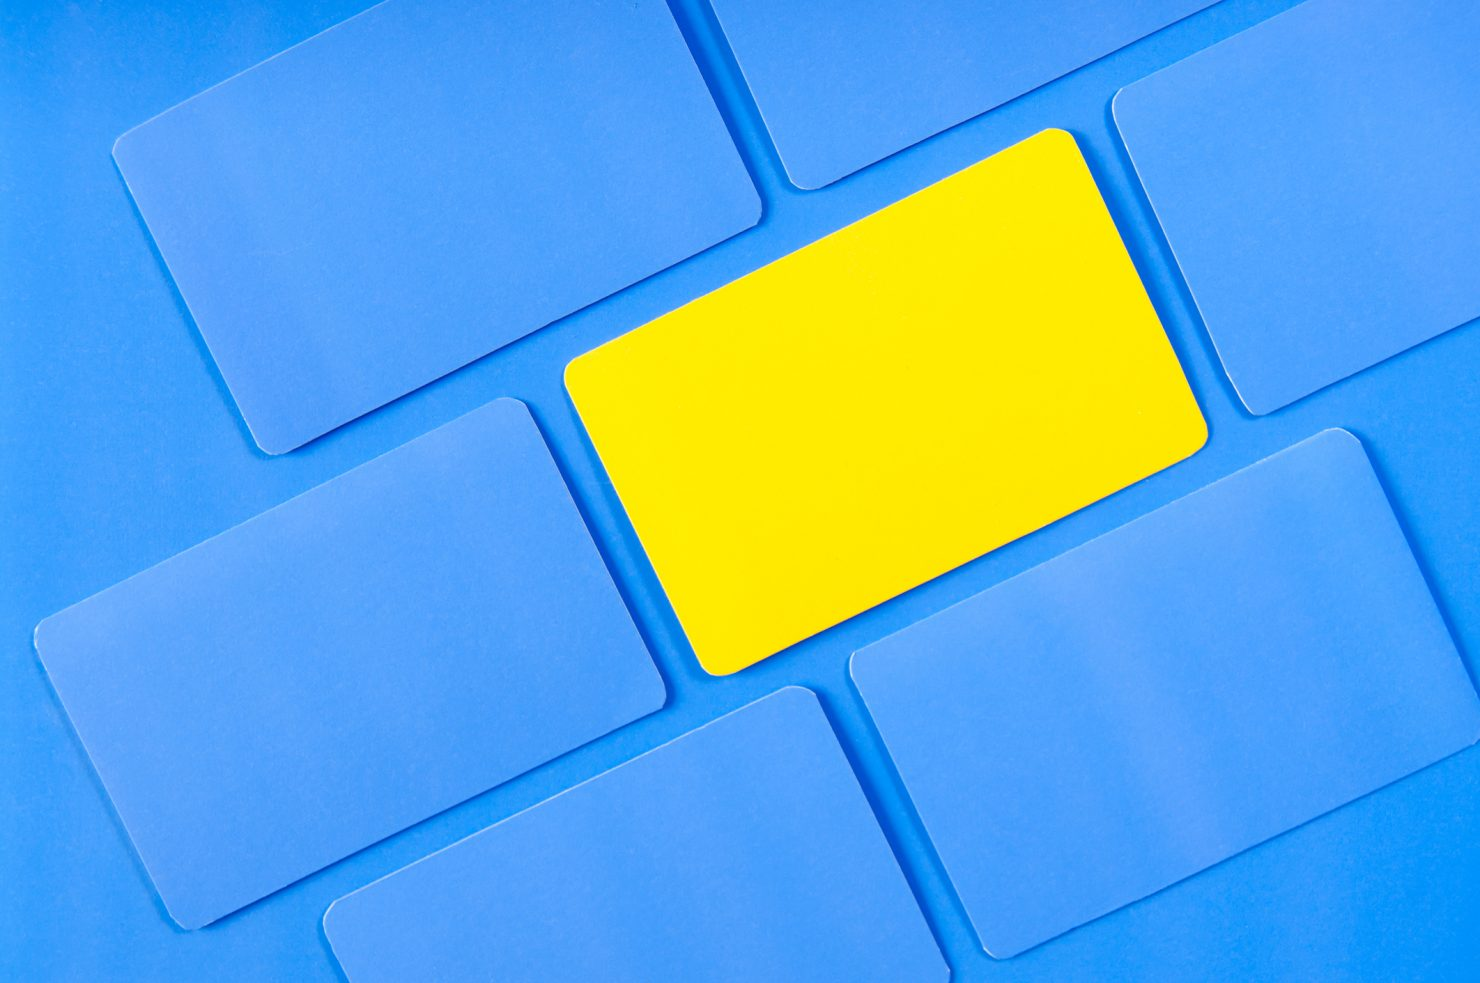 Photo of multiple square pieces of paper turned at an acute angle. All of the pieces of paper are blue save one in the middle which is yellow. This photo represents the importance of consistent visual branding.